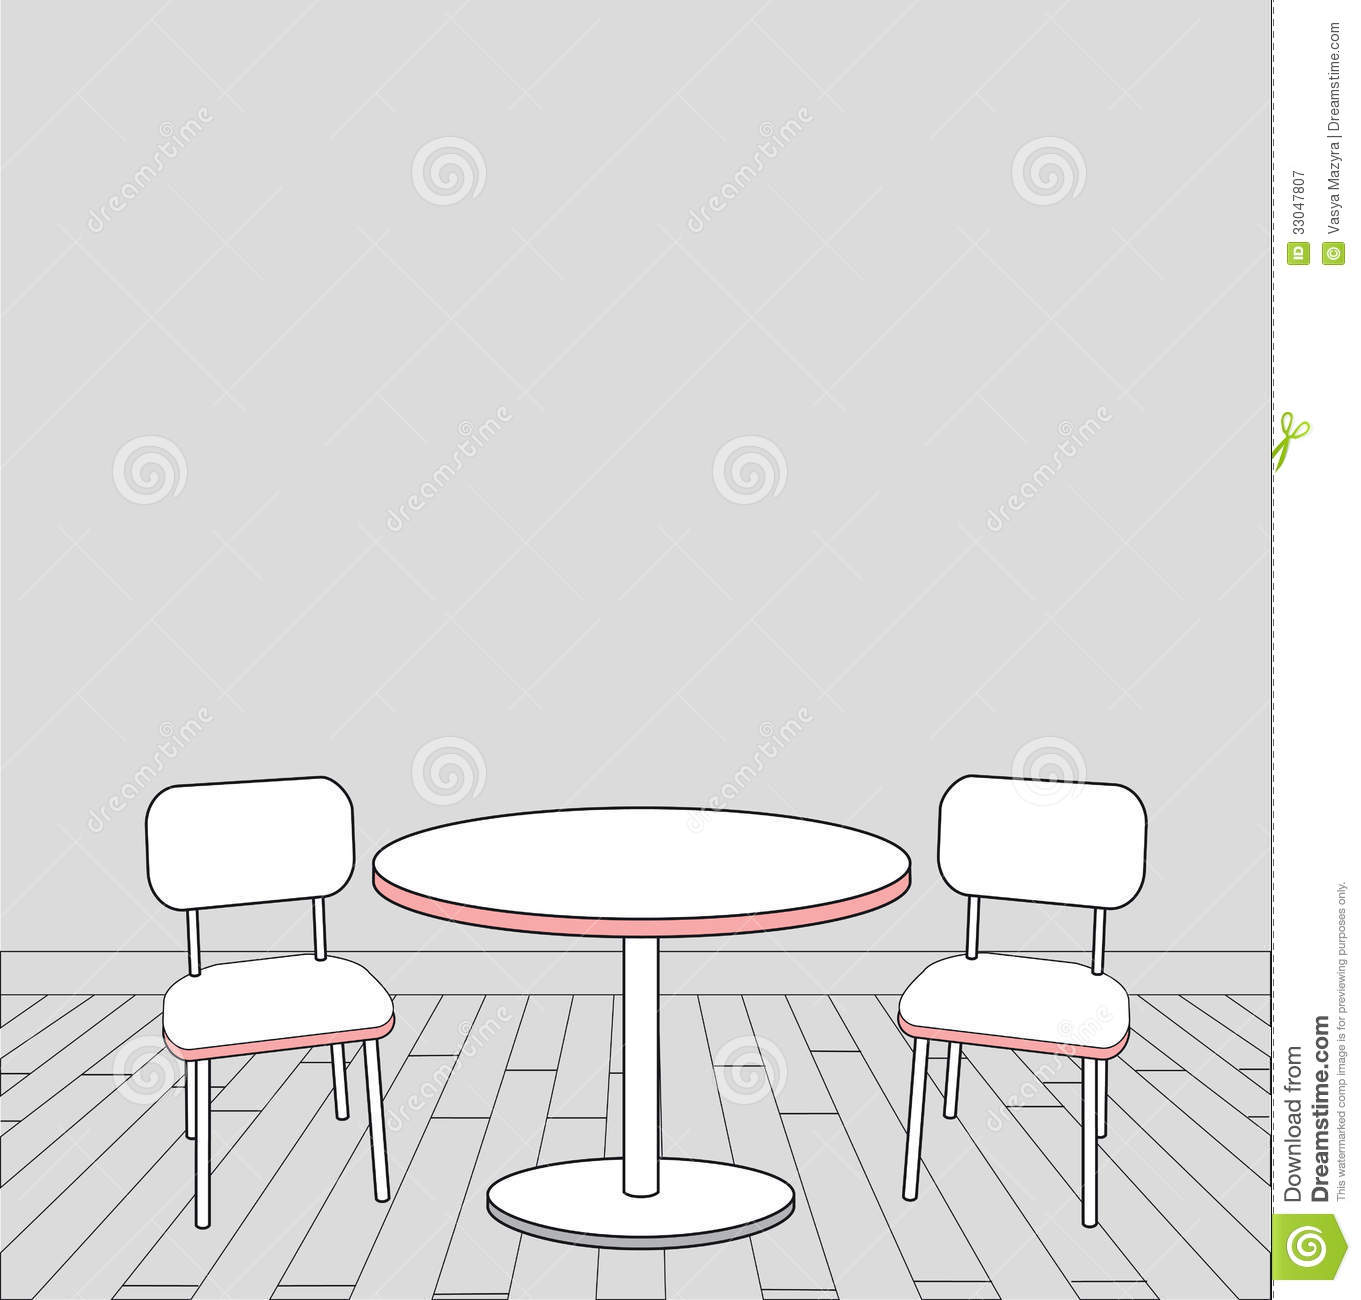 Sketch of modern interior table and chairs vector royalty for Table et chaise moderne